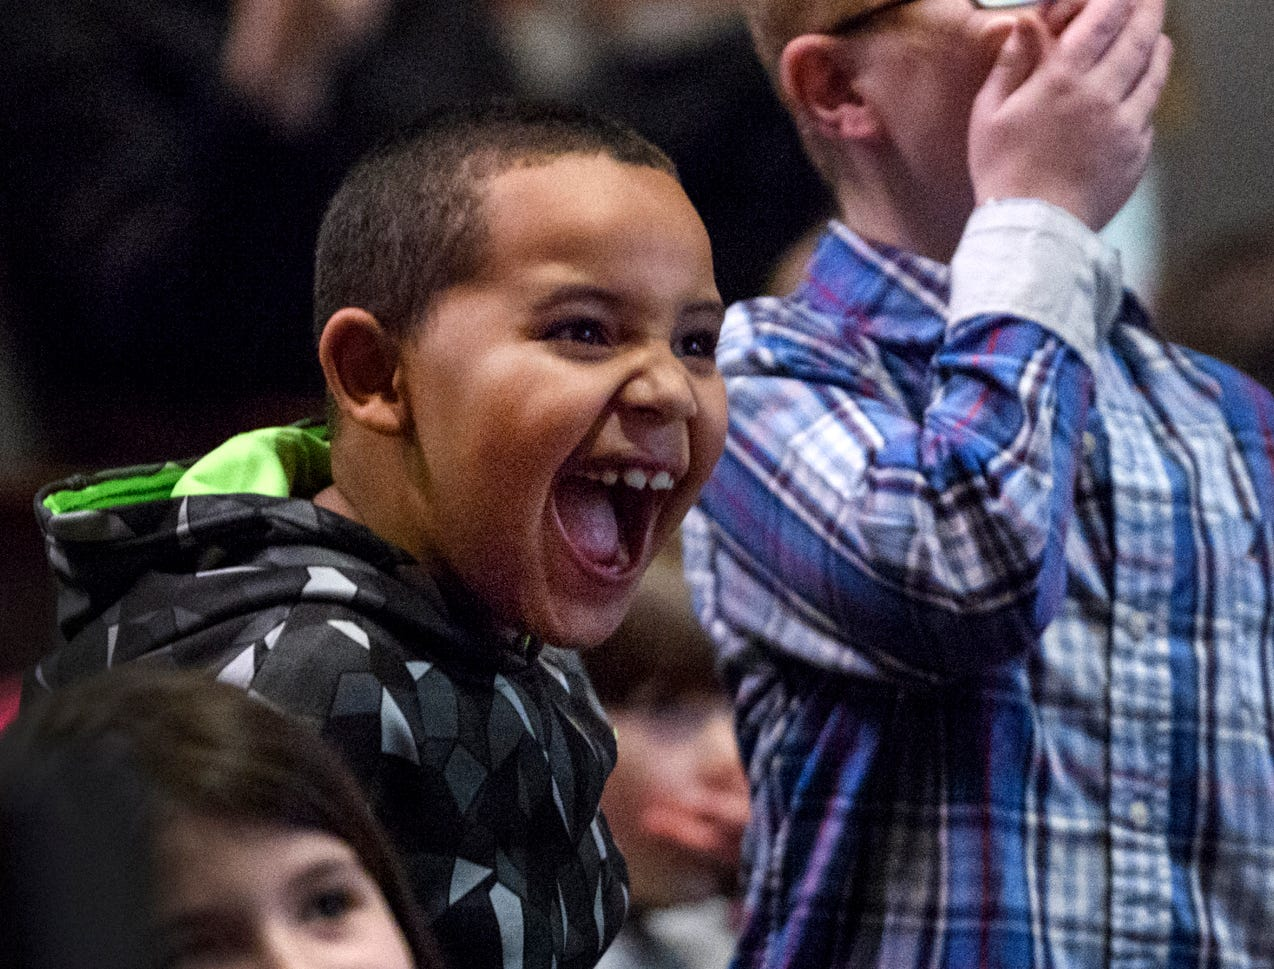 Cassius Prather, 6, front, and James Patterson, 8, back, react to Lisa Hoffman of John James Audubon State Park, not pictured, pulling a live Barred Owl out of a cage during a Henderson County Public Schools Family Night inside Henderson Community College's Preston Arts Center, Thursday, Jan. 24, 2019.